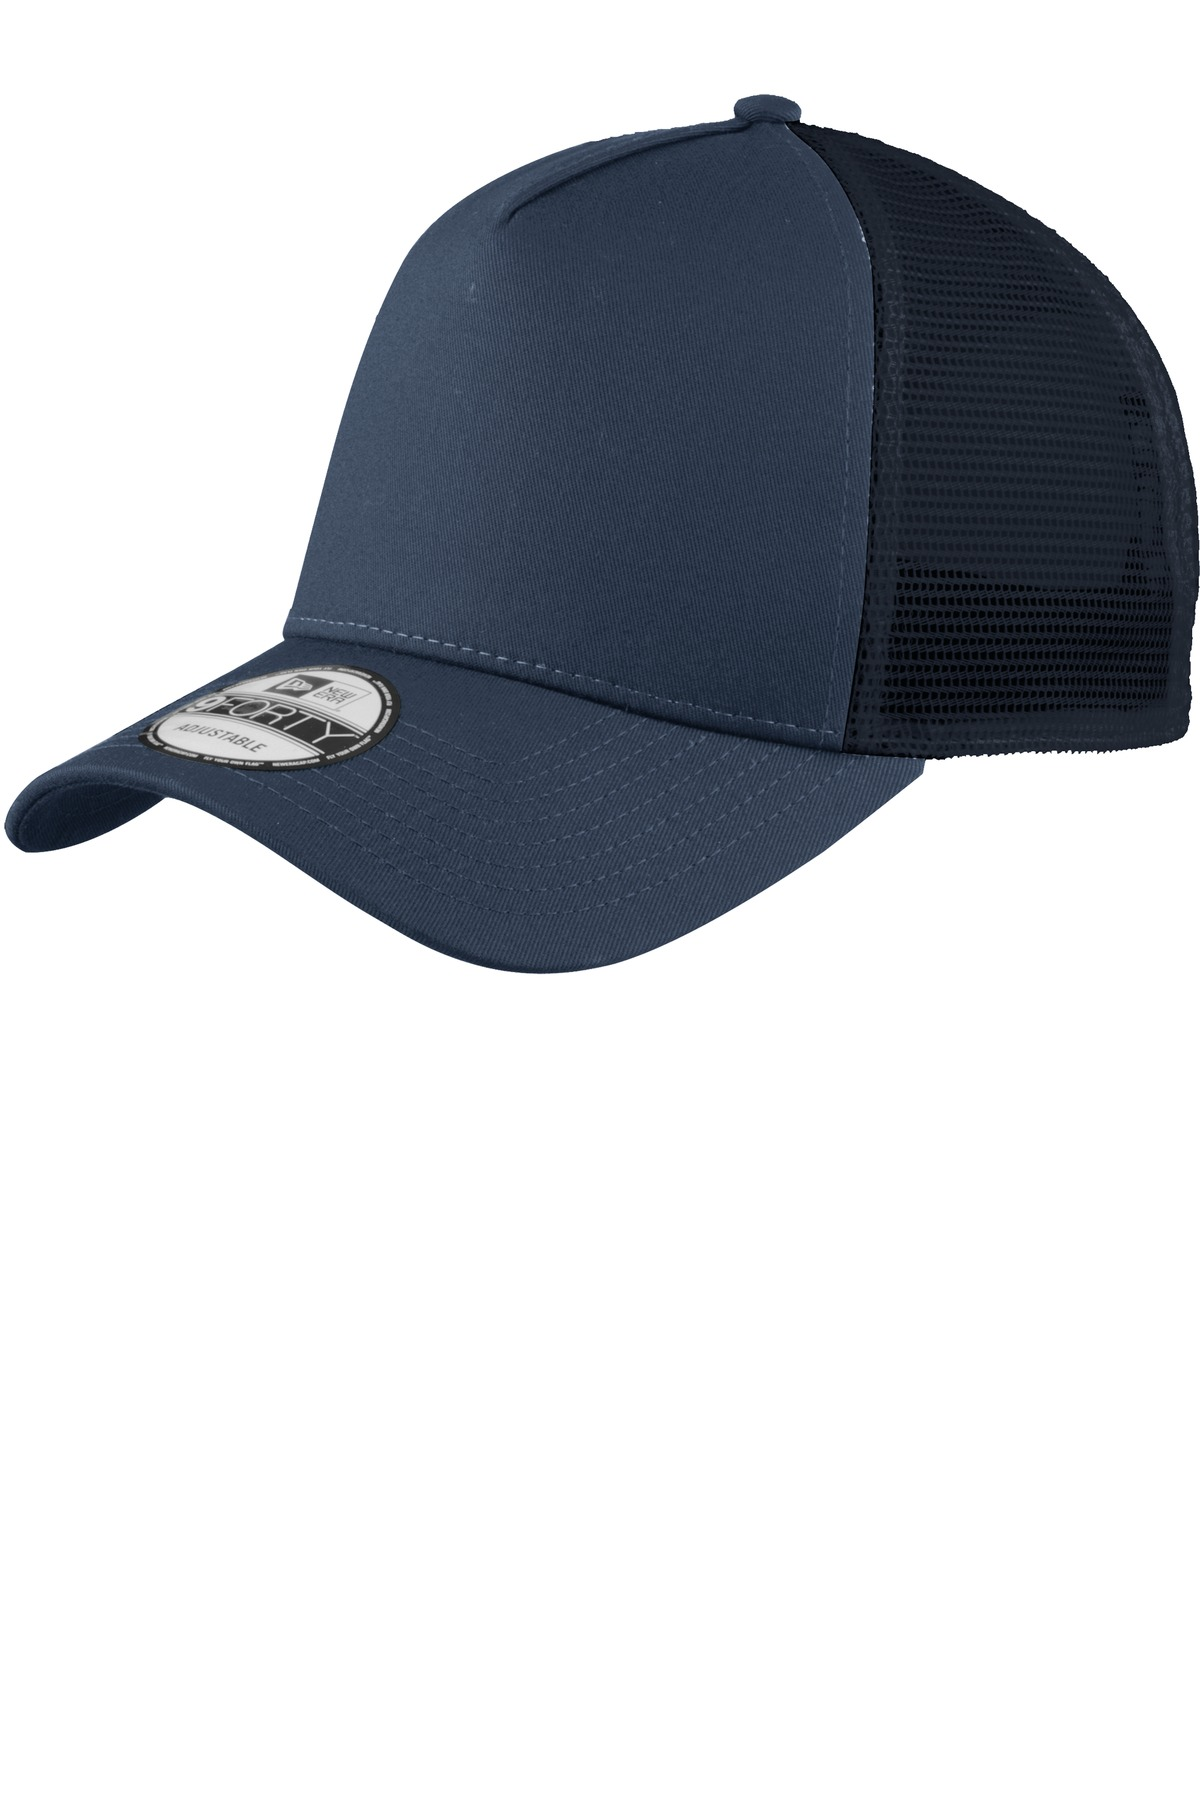 New Era ®  Snapback Trucker Cap. NE205 - Deep Navy/ Deep Navy